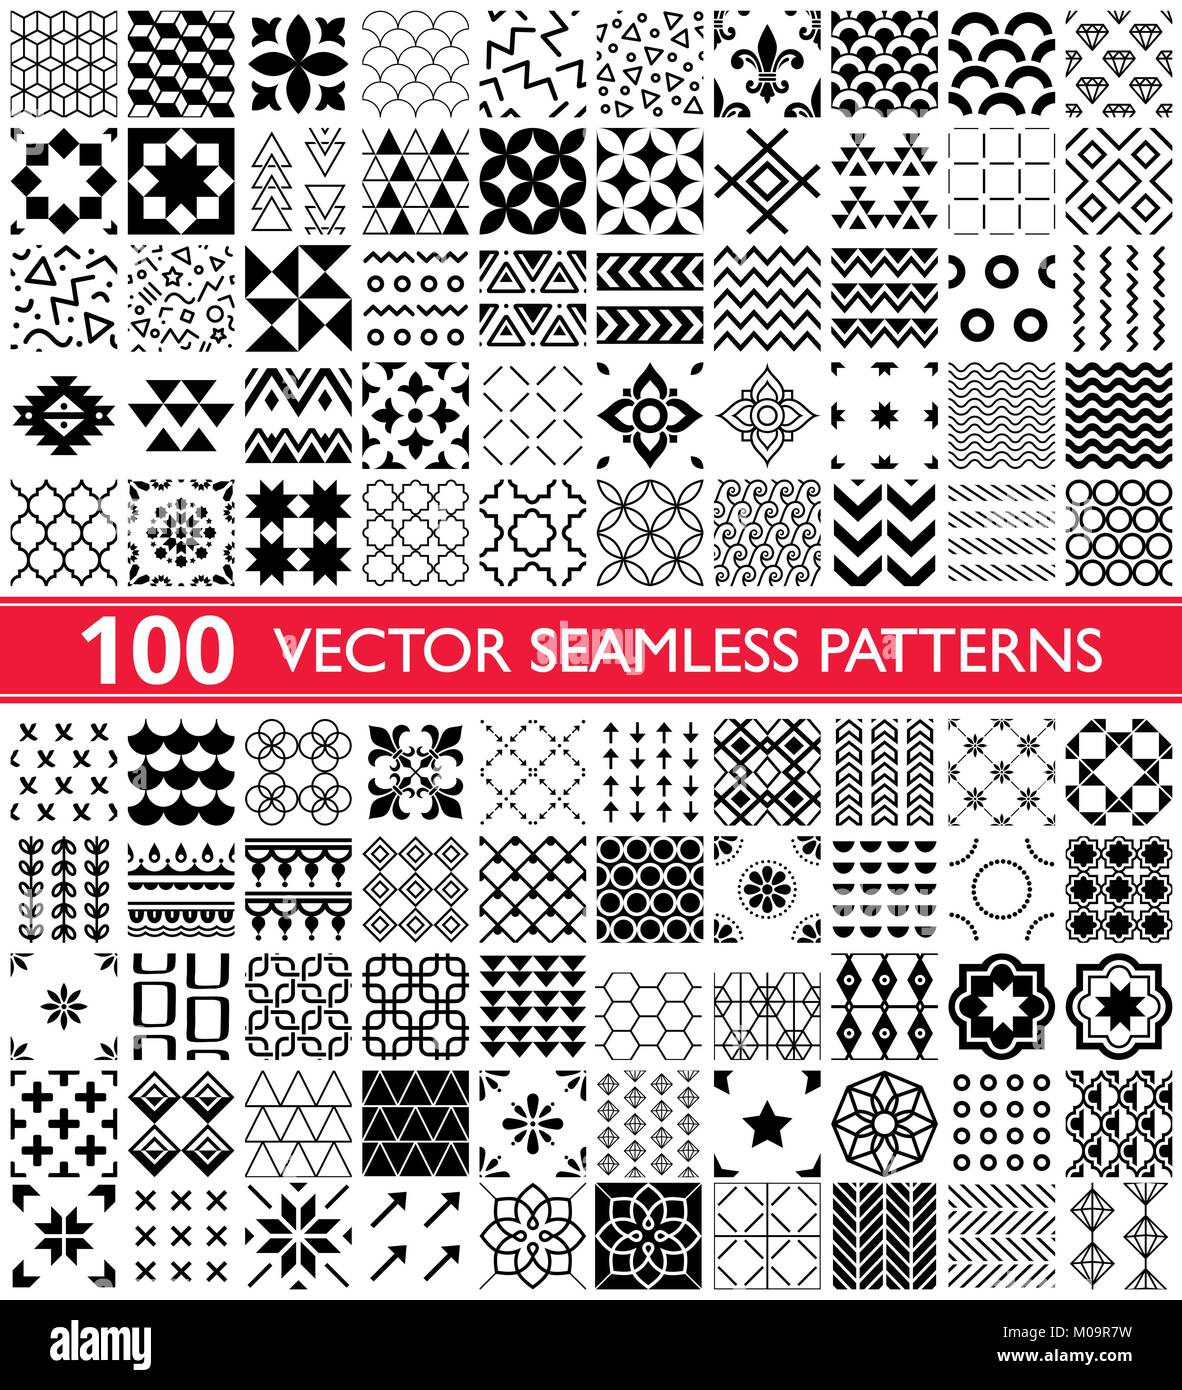 100 vector seamless pattern collection, geometric universal patterns and tiles - big pack - Stock Vector